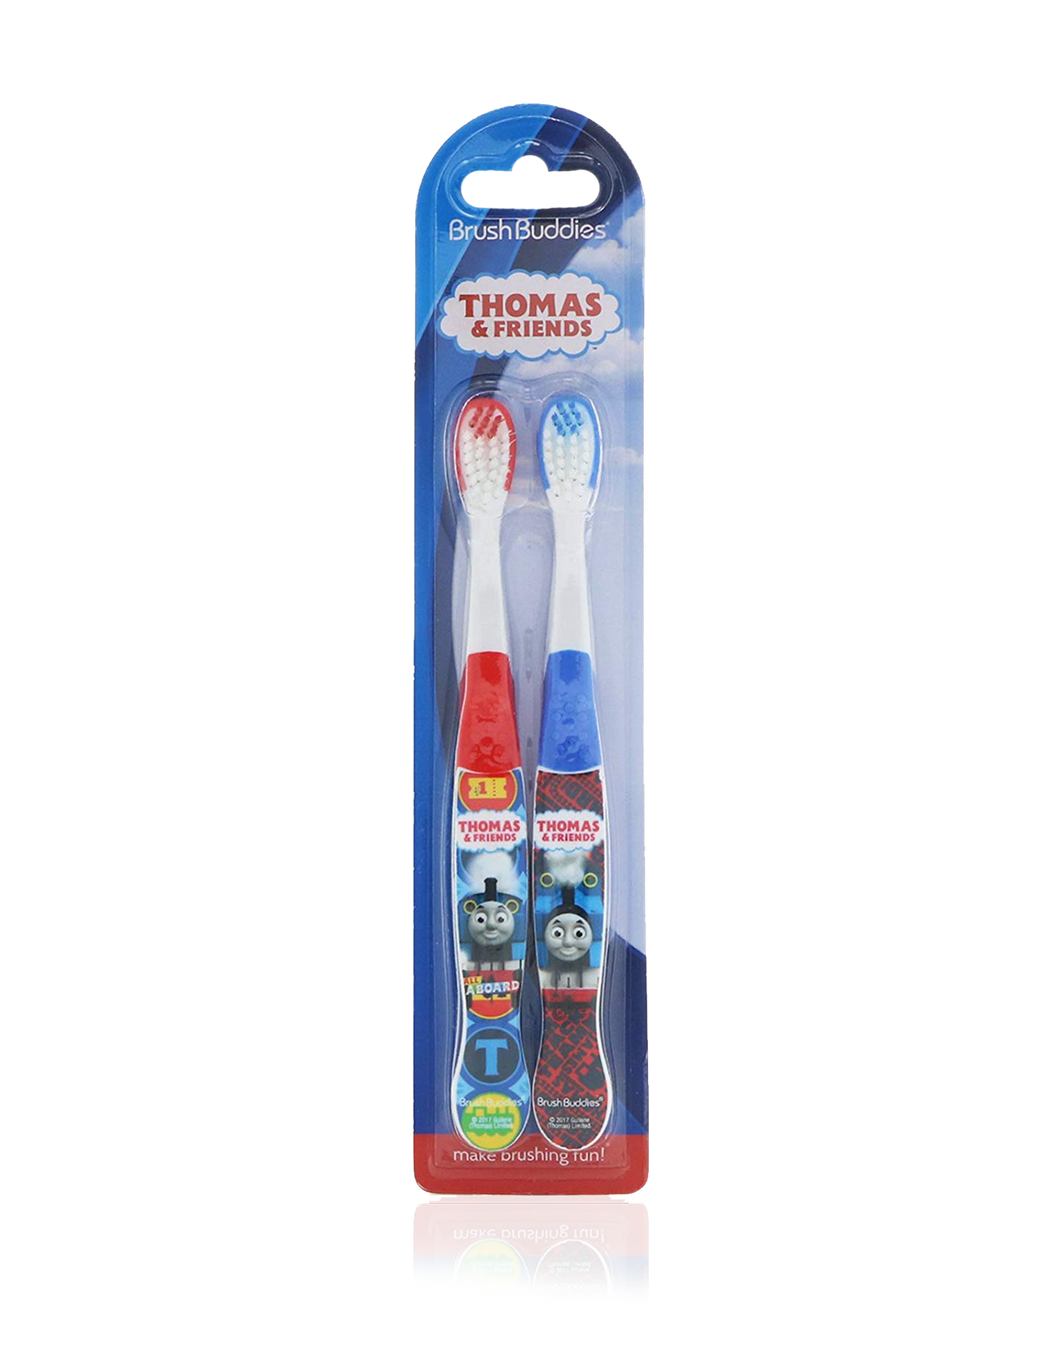 Brush Buddies Thomas & Friends Toothbrush 2 Pack